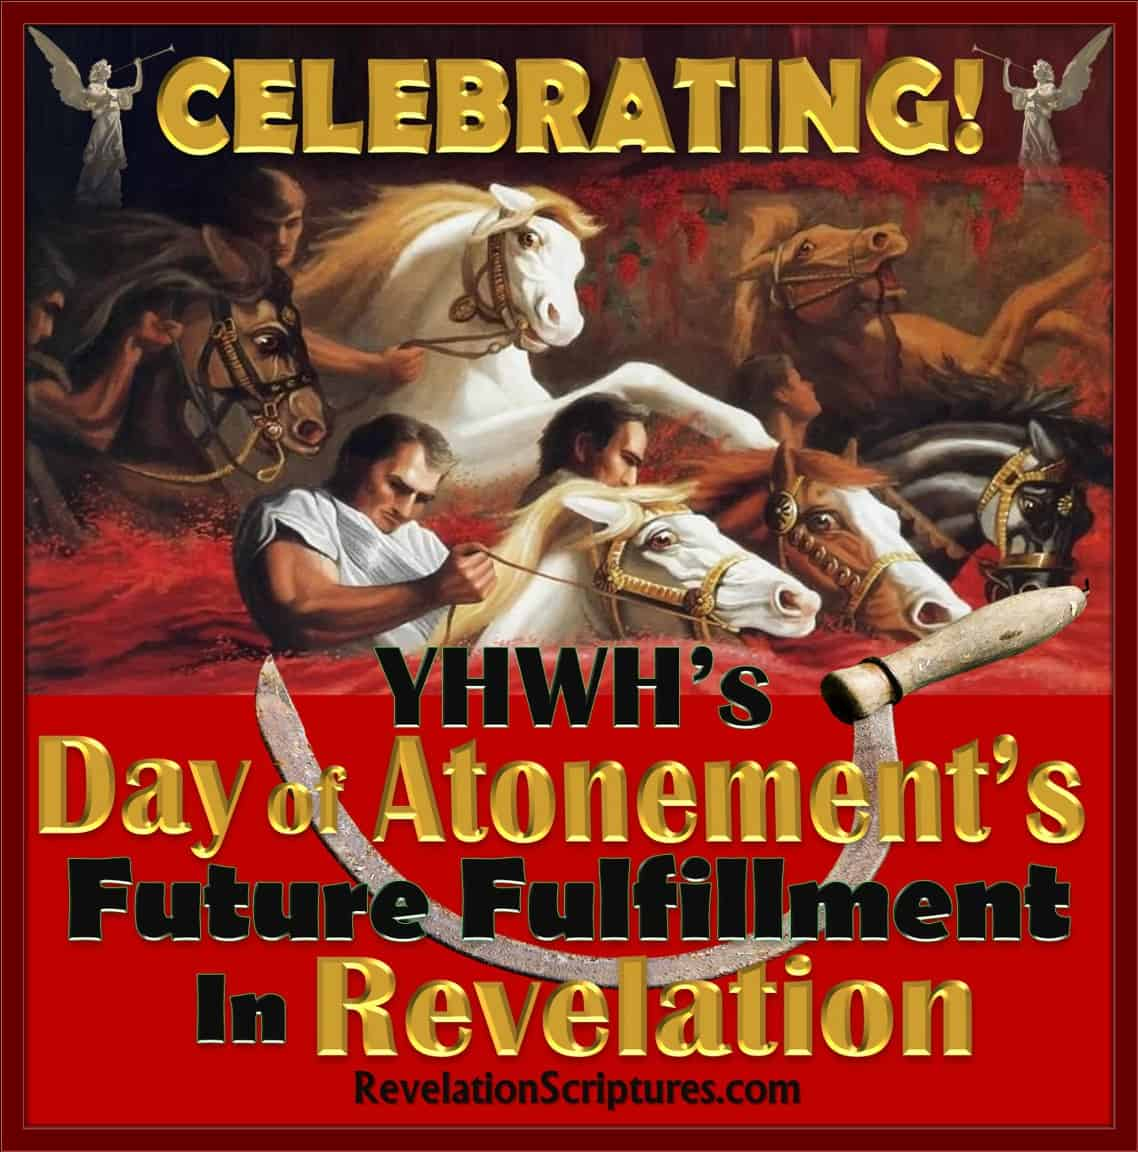 Day of Atonement,Yom Kippur,Book of Revelation,Atonement in Revelation,Day of Atonement in Revelation,Old Testament,Bible,Leviticus,hebrew,High Priest,Sacrifice,mercy seat,temple,lamb,scapegoat,Israel,Jewish Holy Days,Jewish Holidays,blood,blood atonement,cleanse,wash,forgive,cover,purify,pardon,redeem,purge,putoff,reconcile,reconciliation,pacify,Leviticus 17,Yom Kippur in Revelation,Feast in Revelation,Altar,Blood Altar,Sacrifice